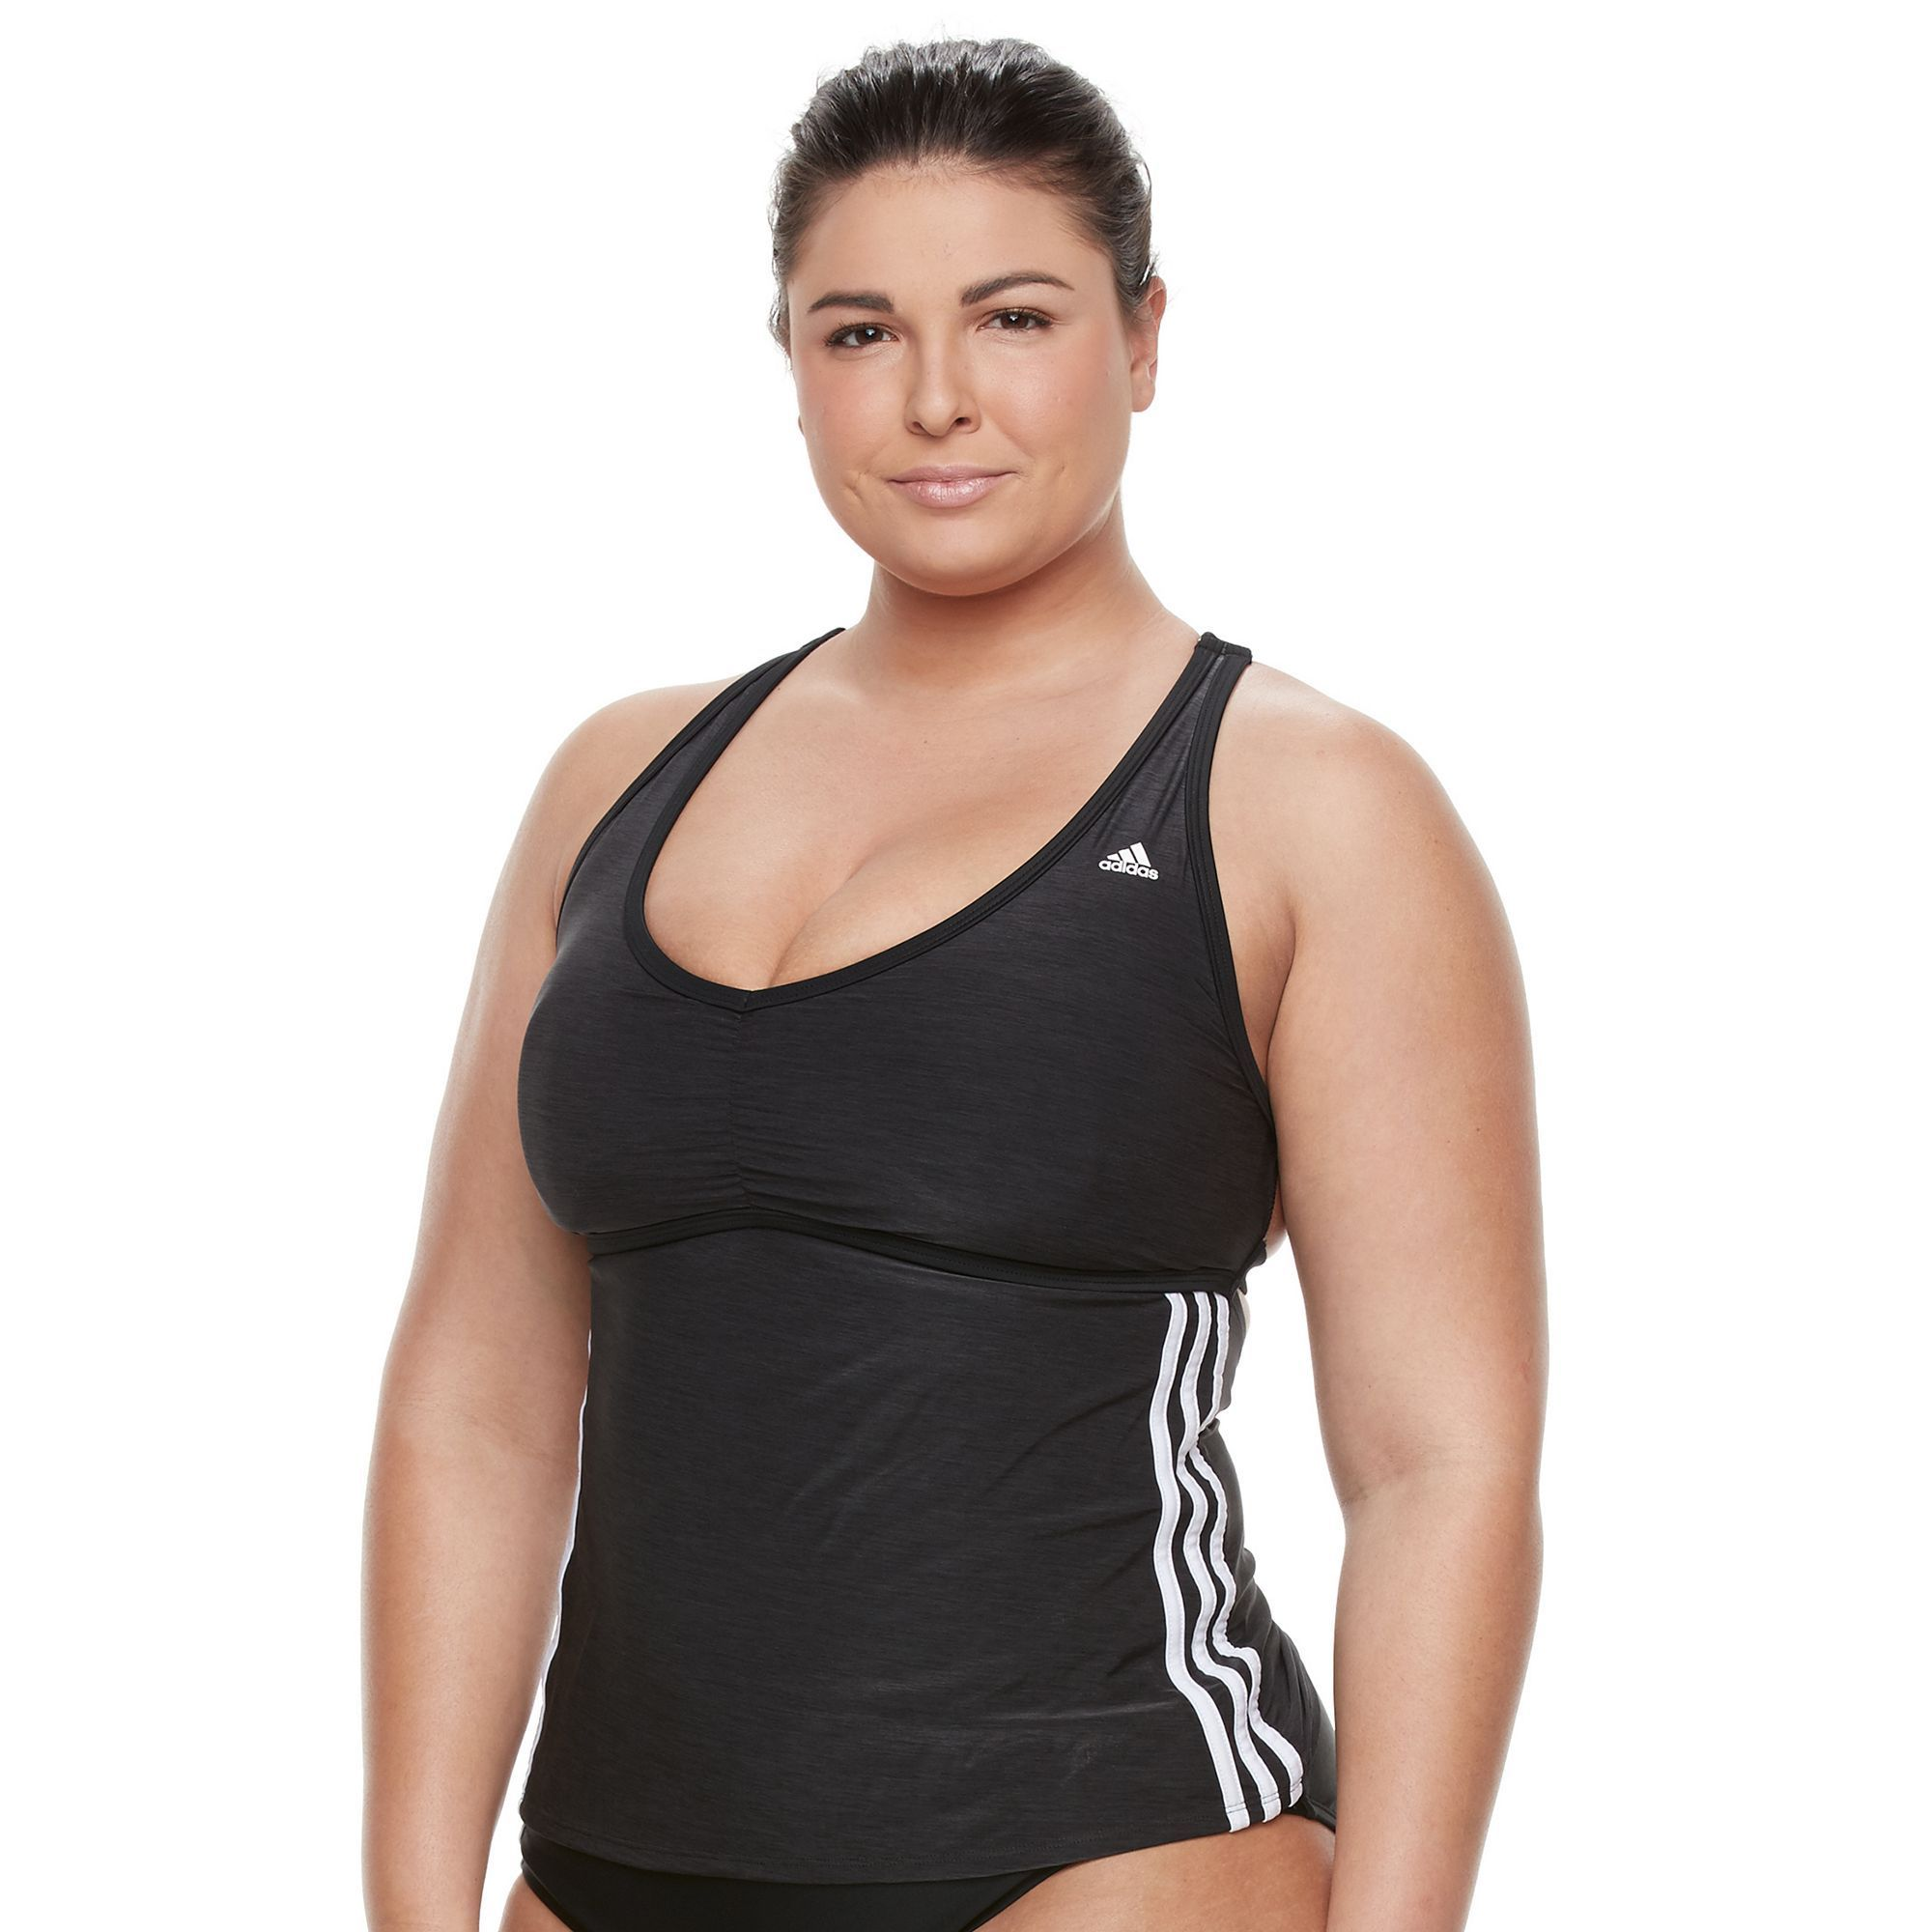 8959d91c488 Plus Size adidas Light As Heather Sporty Tankini Top